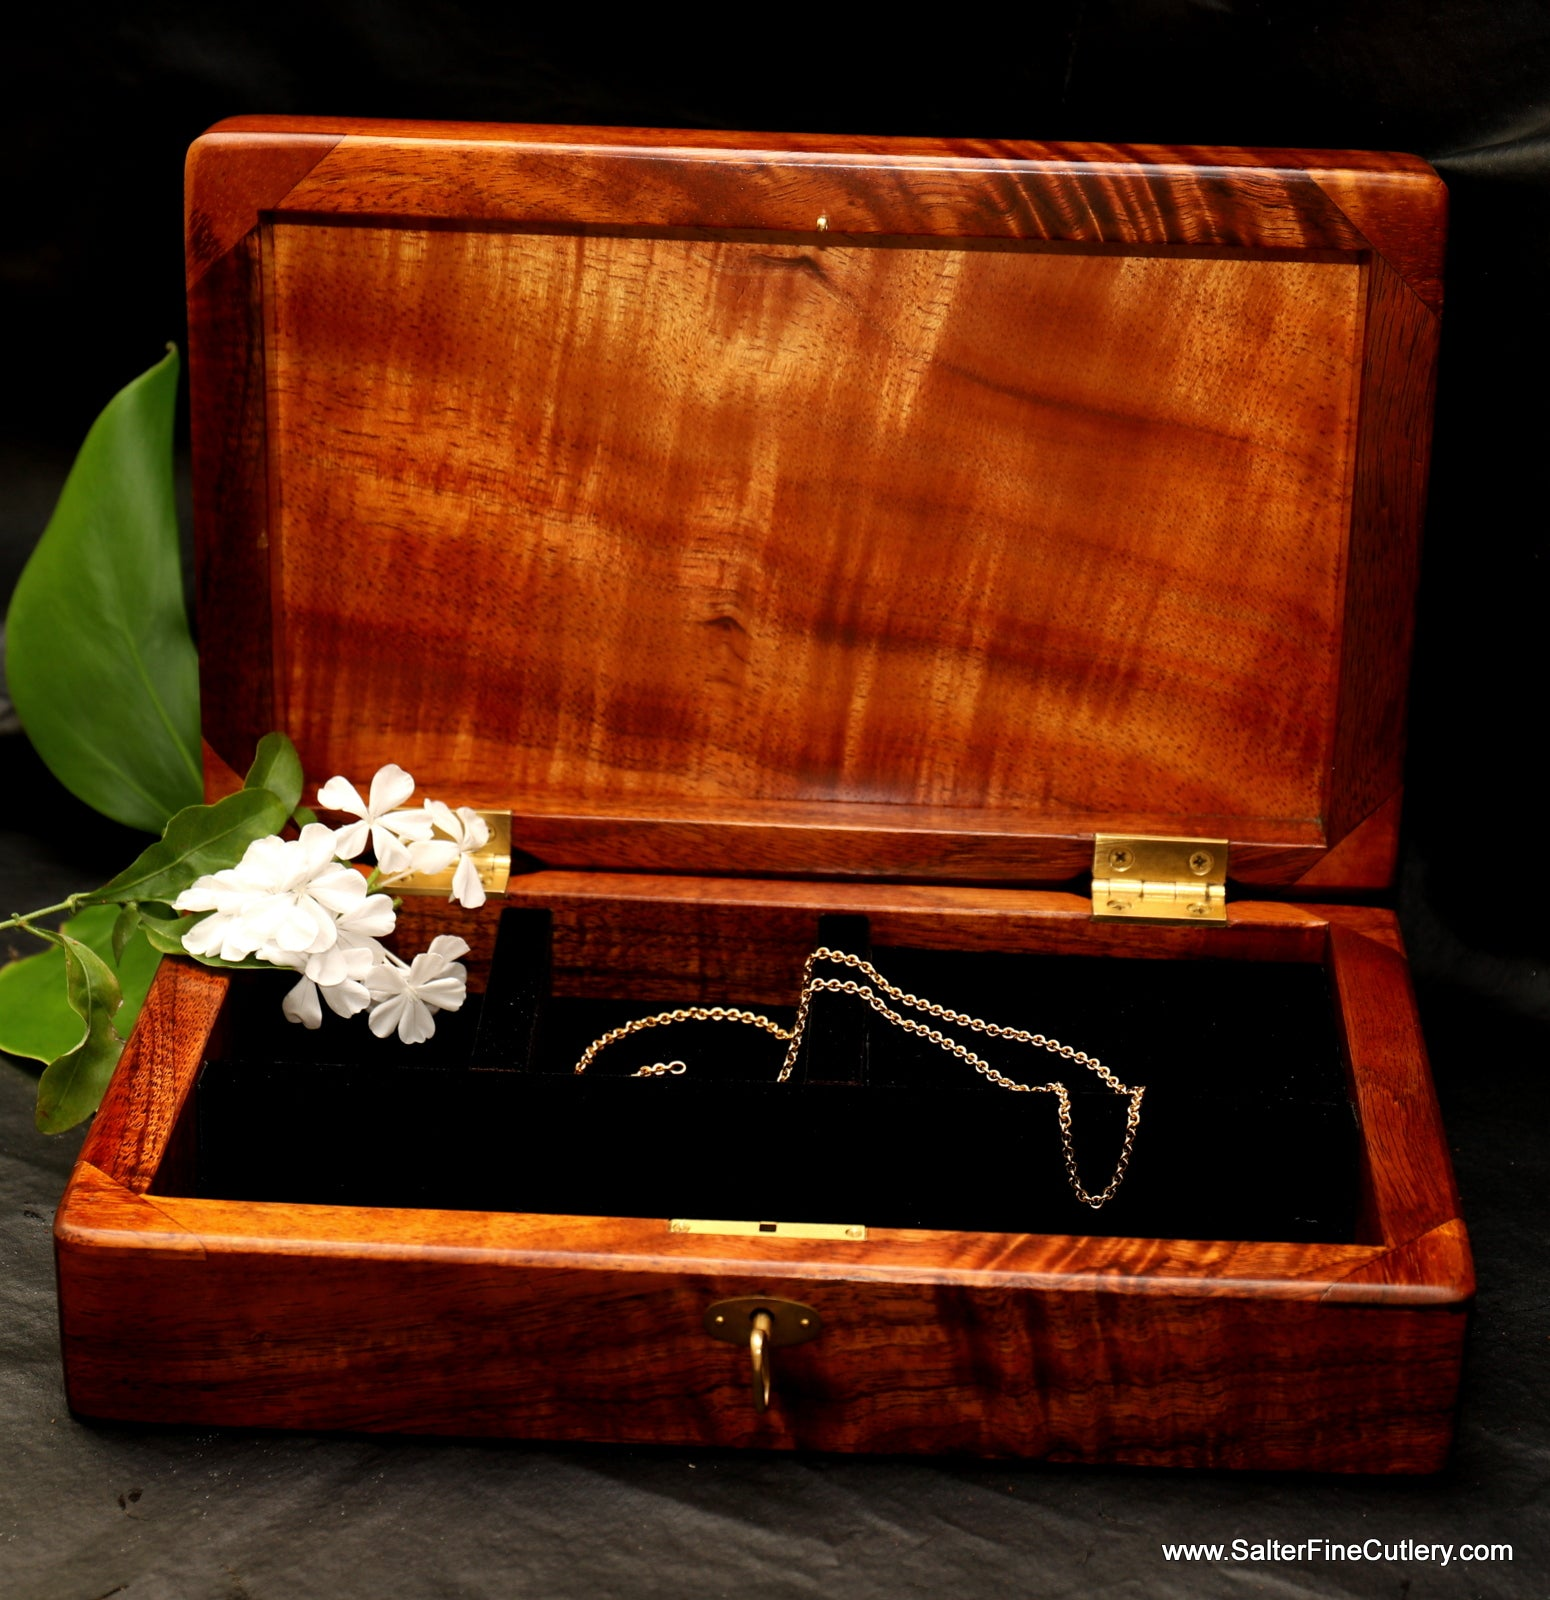 In Stock Item: Medium Ladies or Mens Jewelry Box